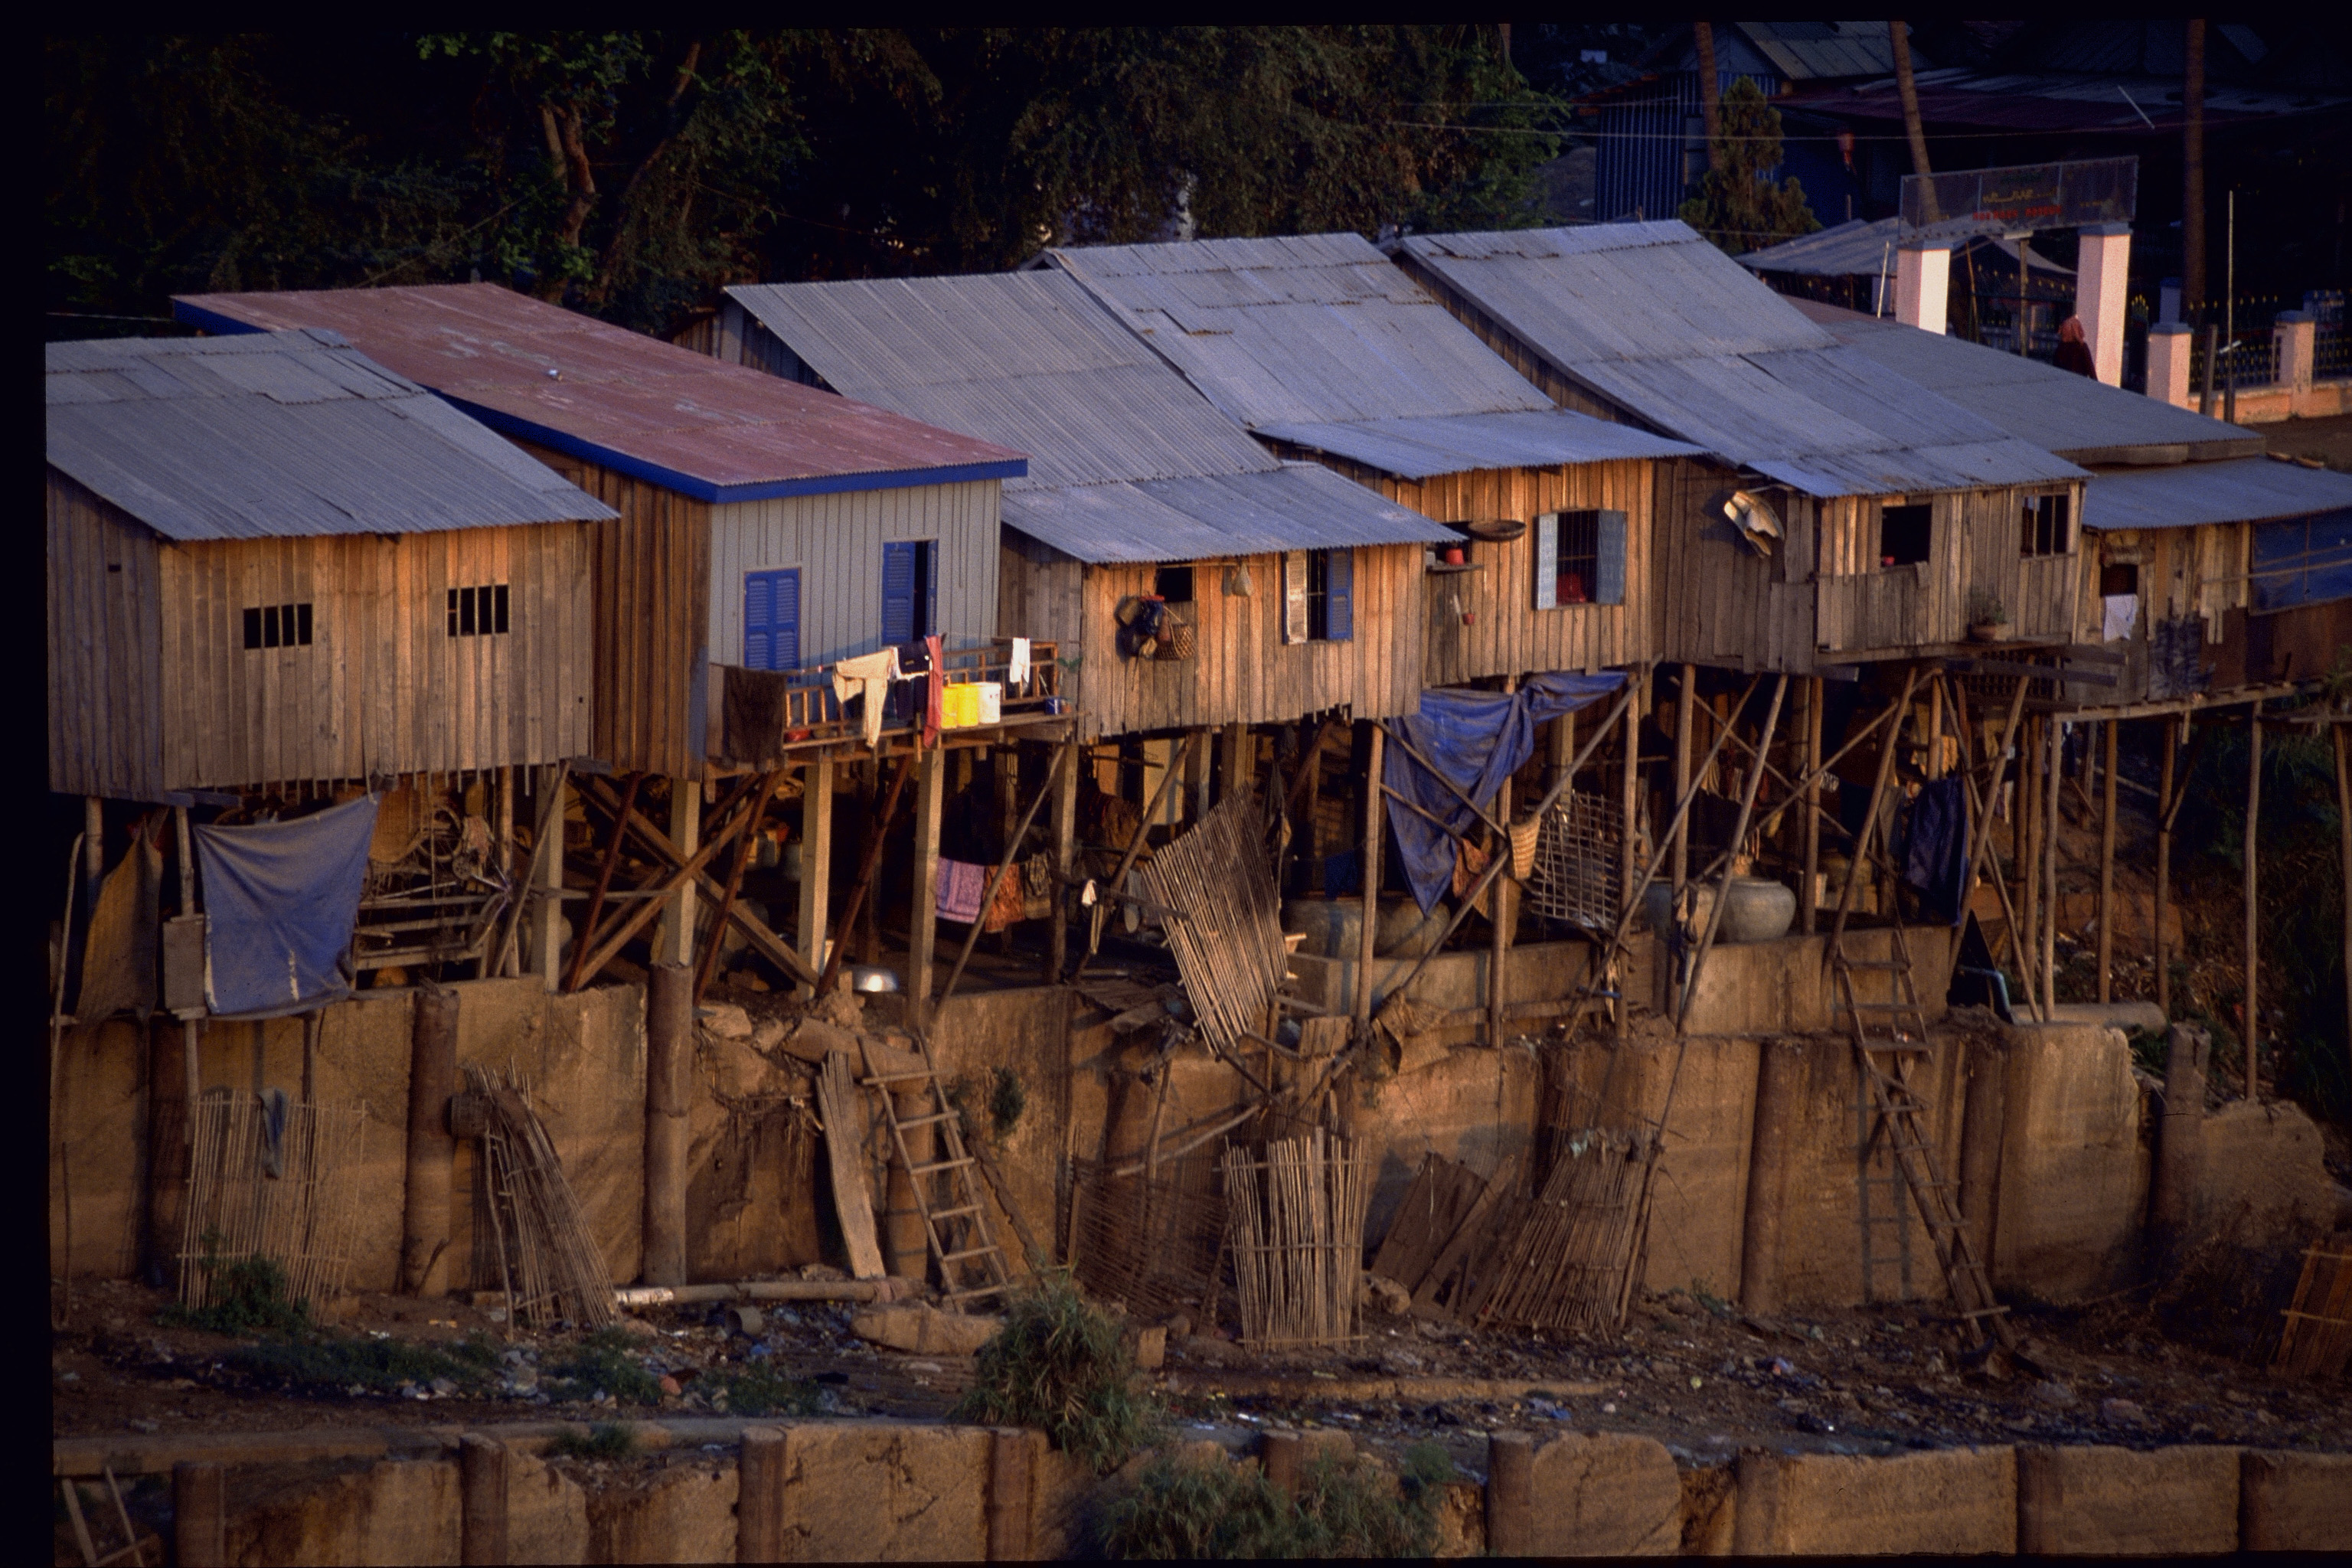 Poor people fear being forced to leave their homes, built along Bassac River in Phnom Penh, Cambodia. Photo by Tim Acker for AusAID